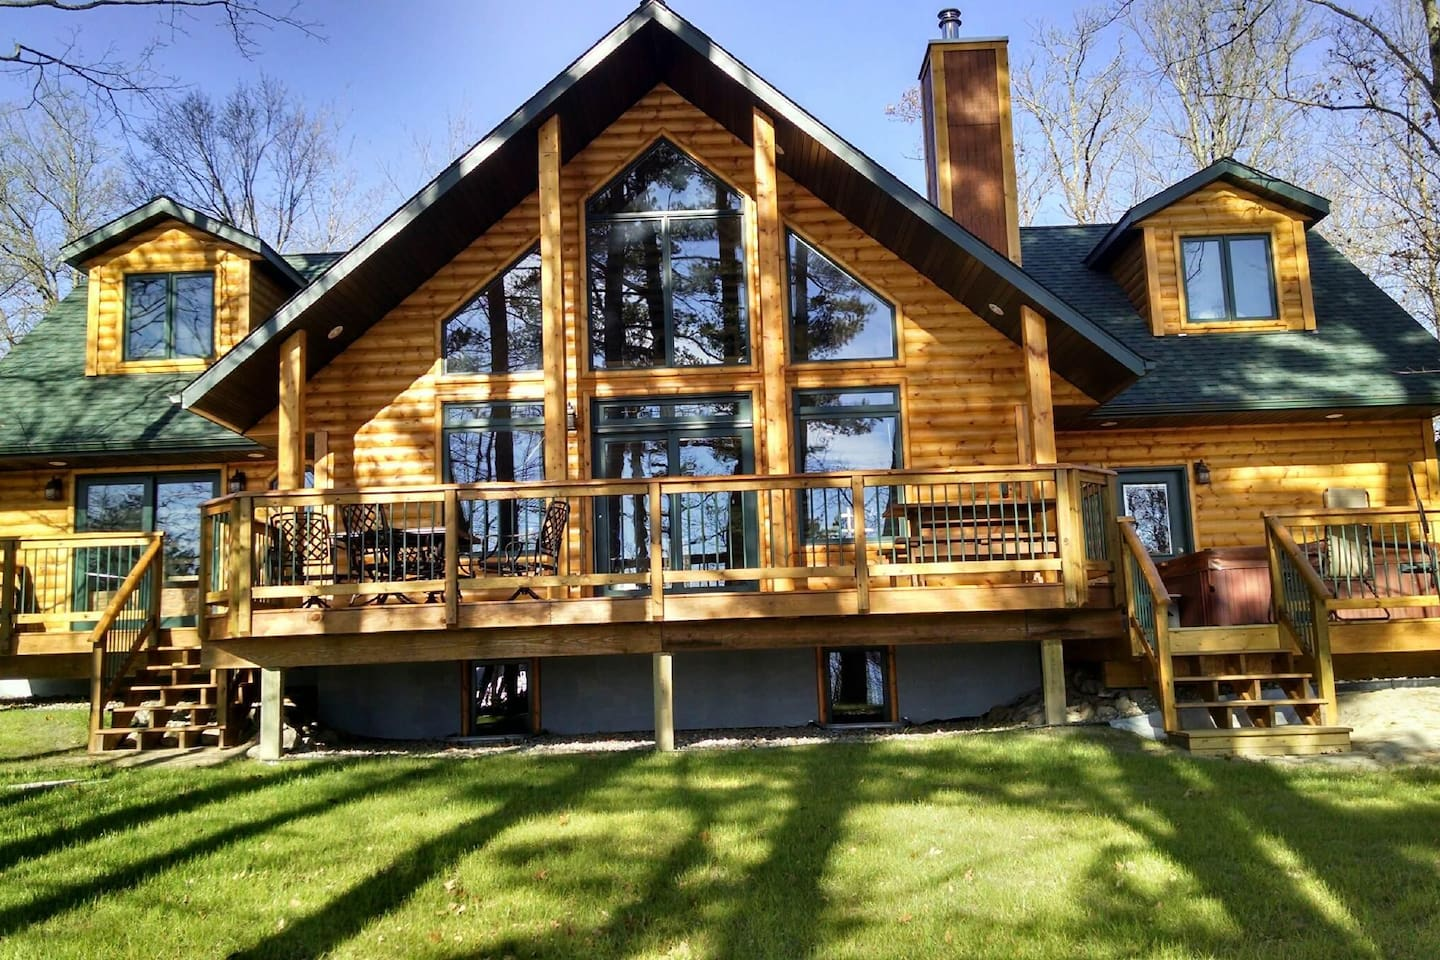 Shared - The windows reflect the trees and lake you have just come from with a deck welcoming you back.